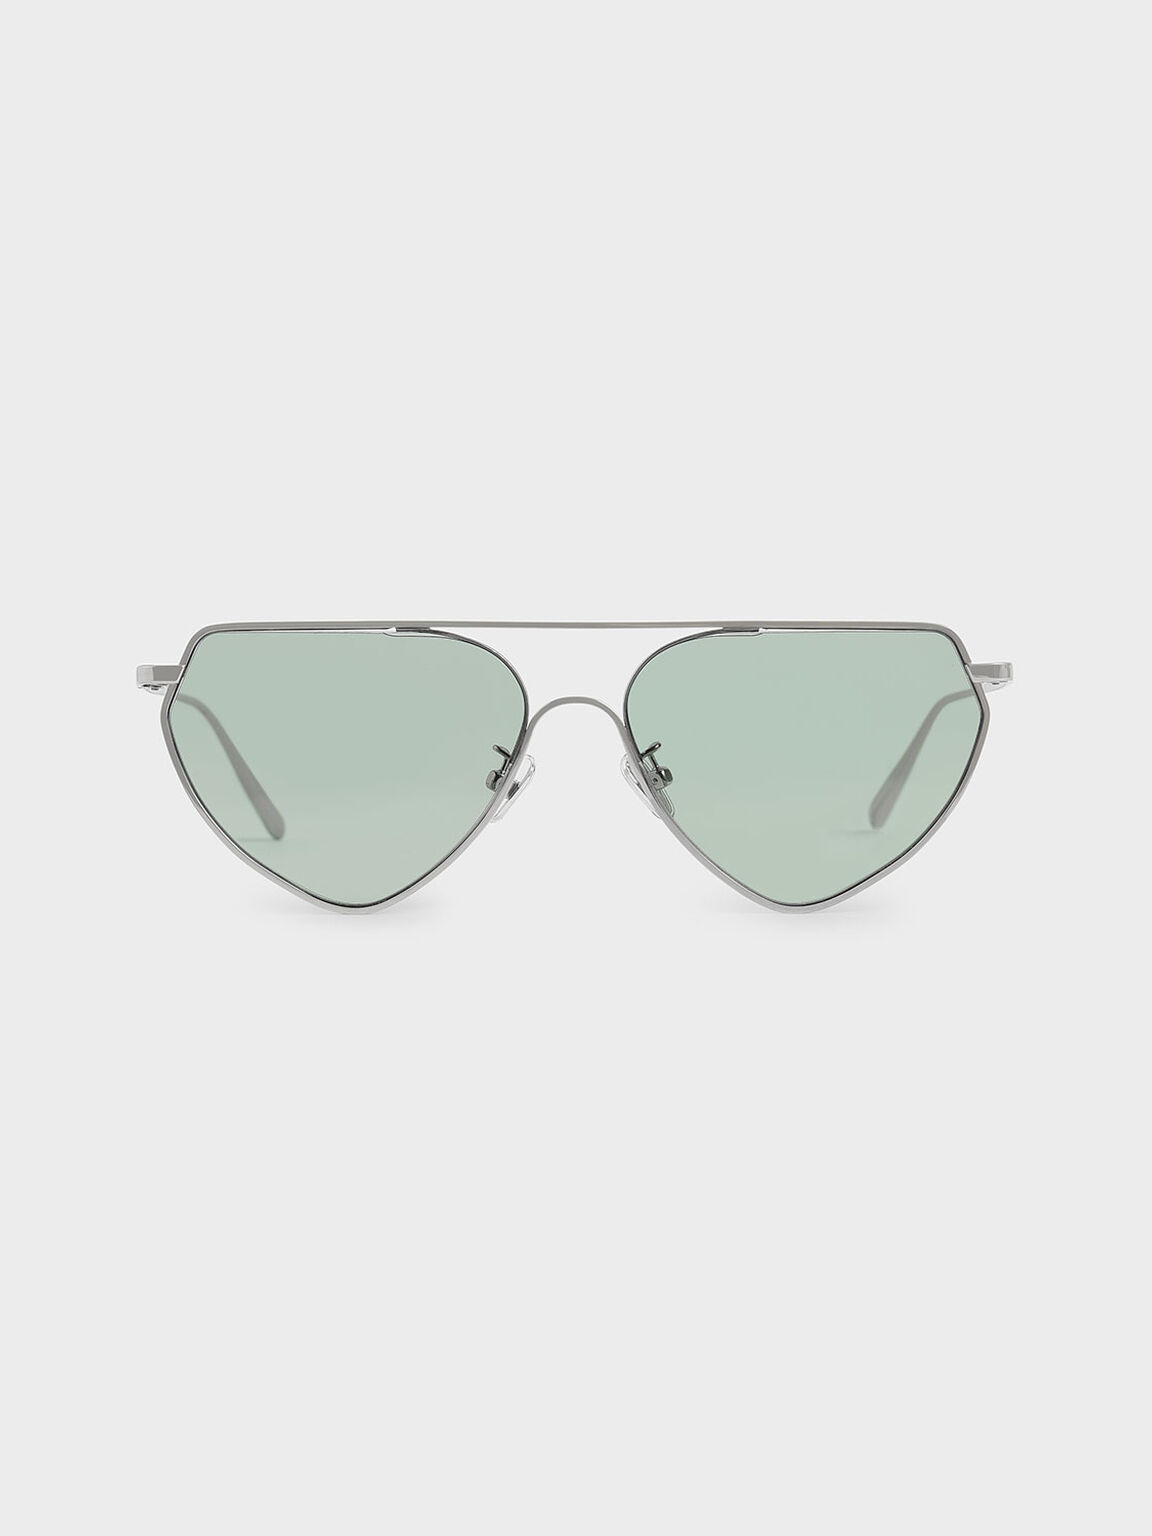 Thin Metal Frame Geometric Sunglasses, Green, hi-res